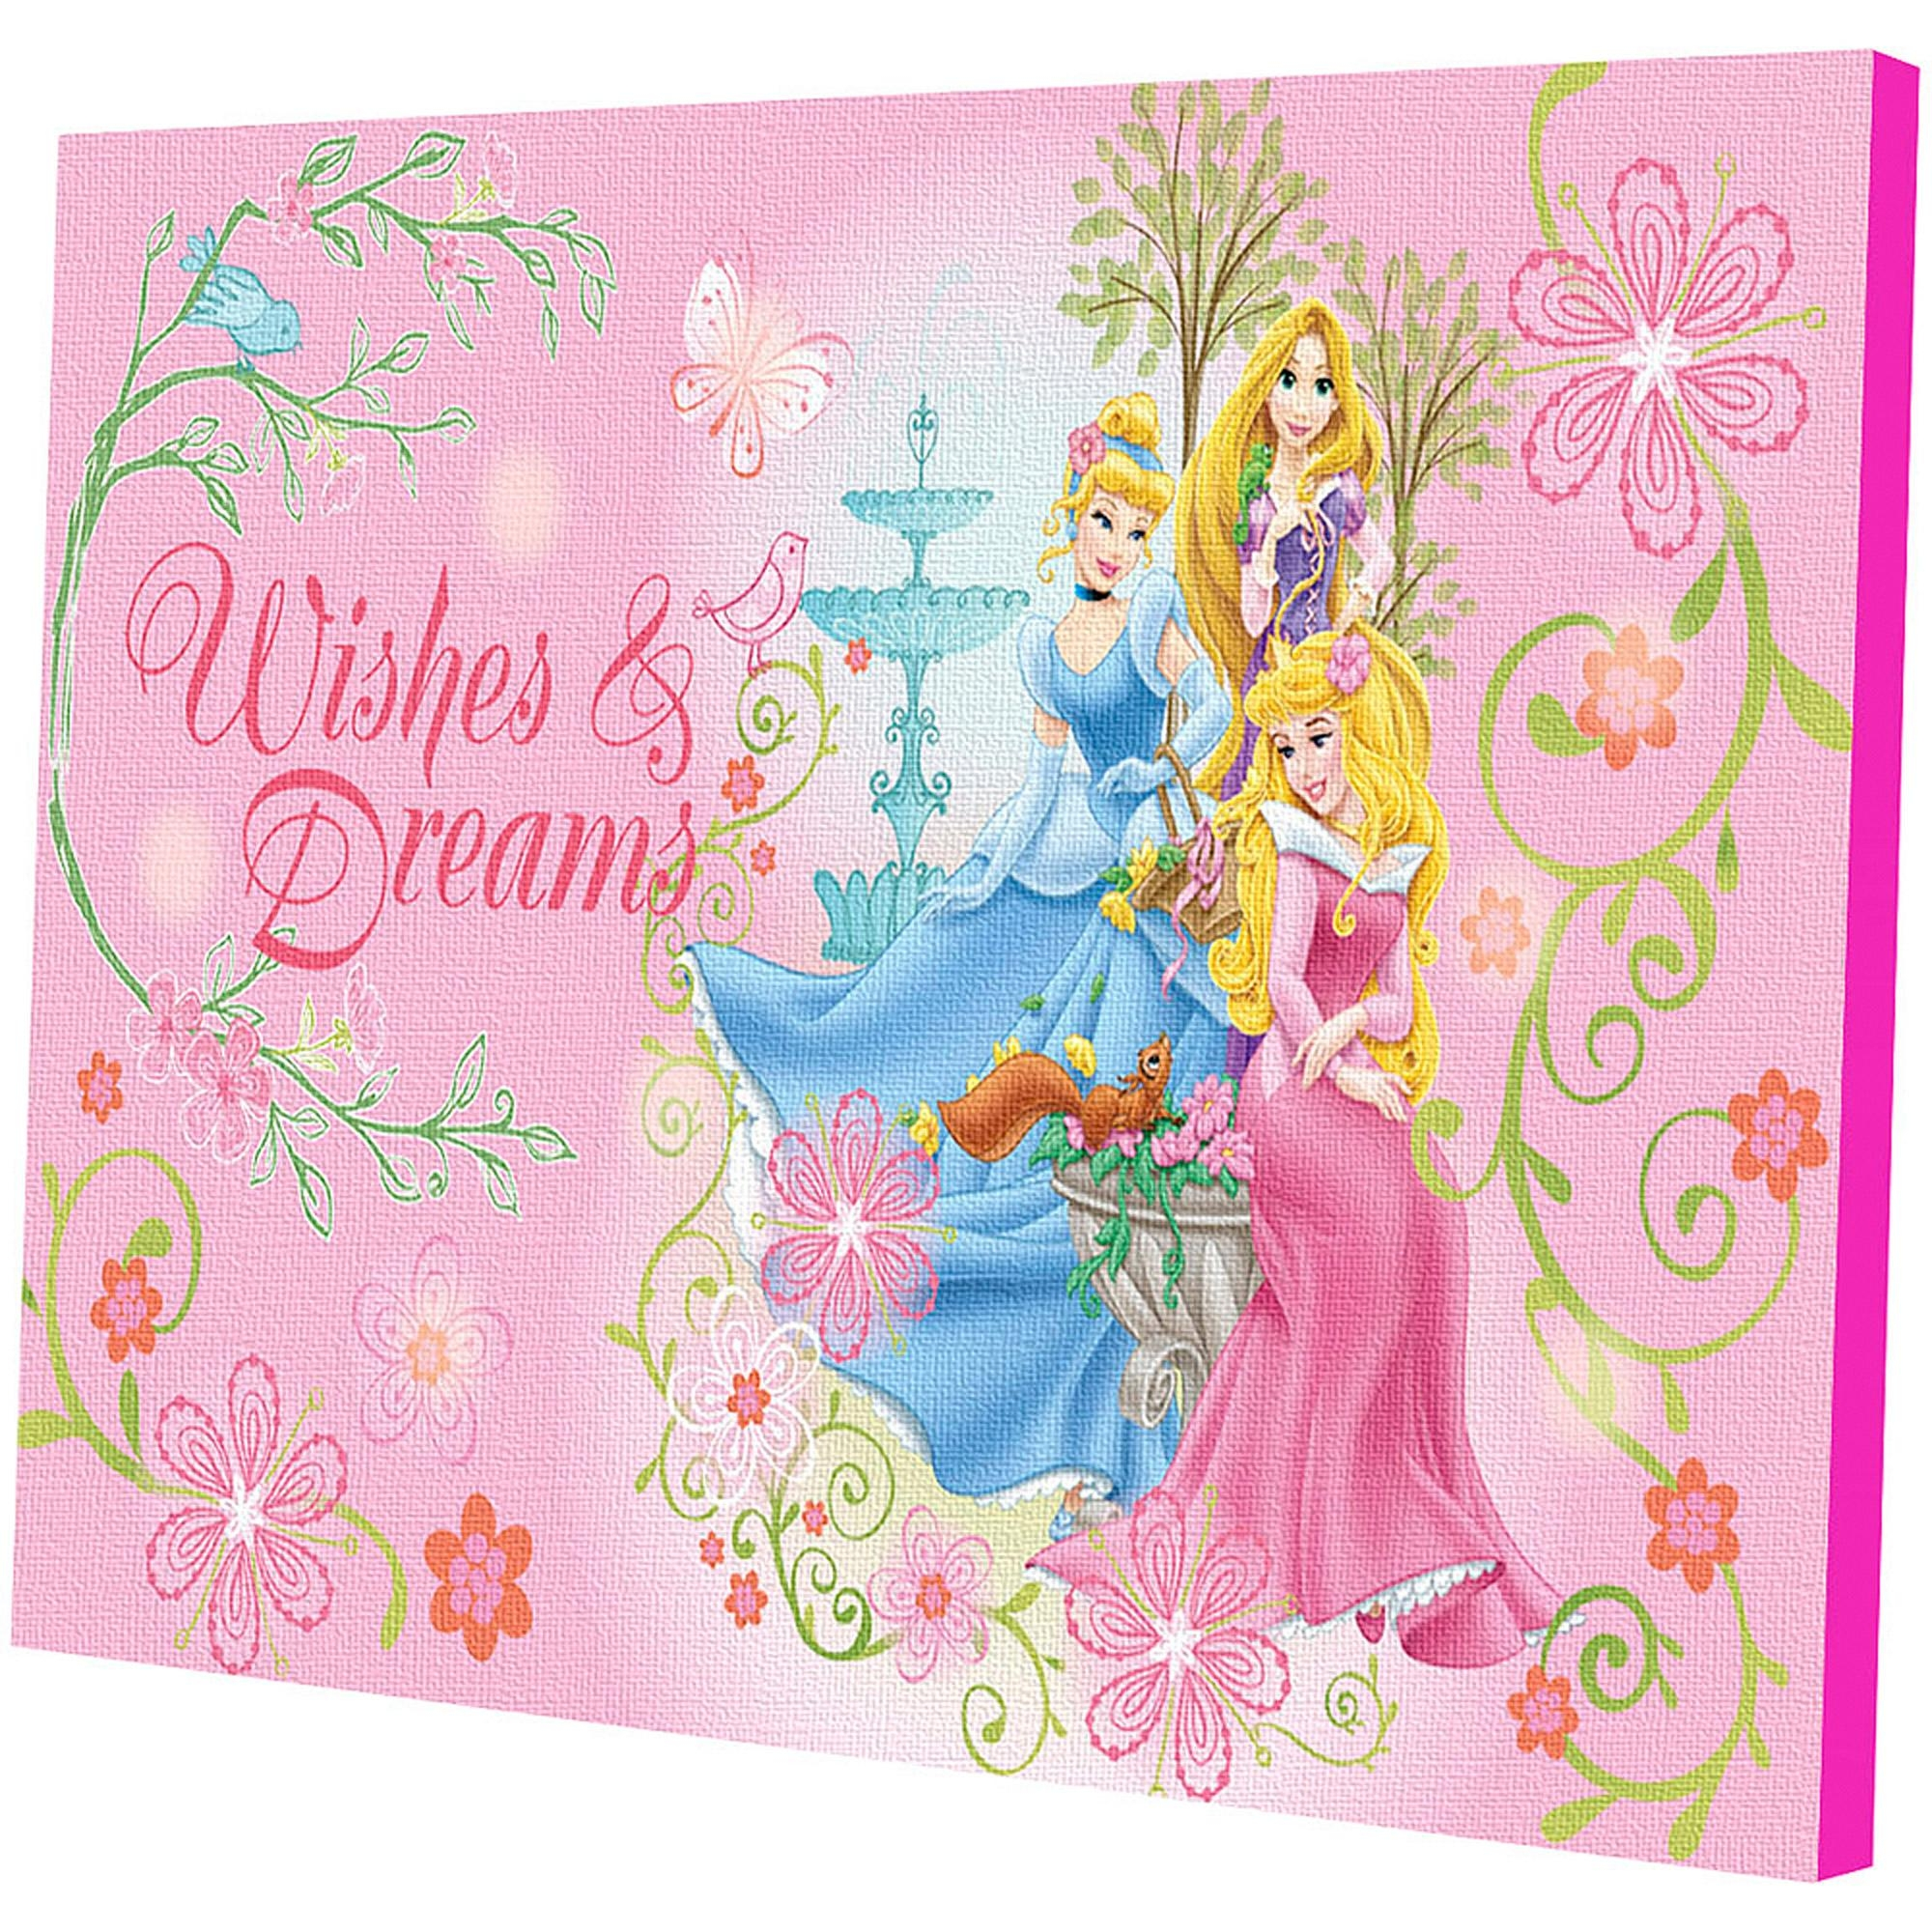 Disney Princess Led Light Up Canvas Wall Art – Walmart With Regard To Disney Canvas Wall Art (View 19 of 20)